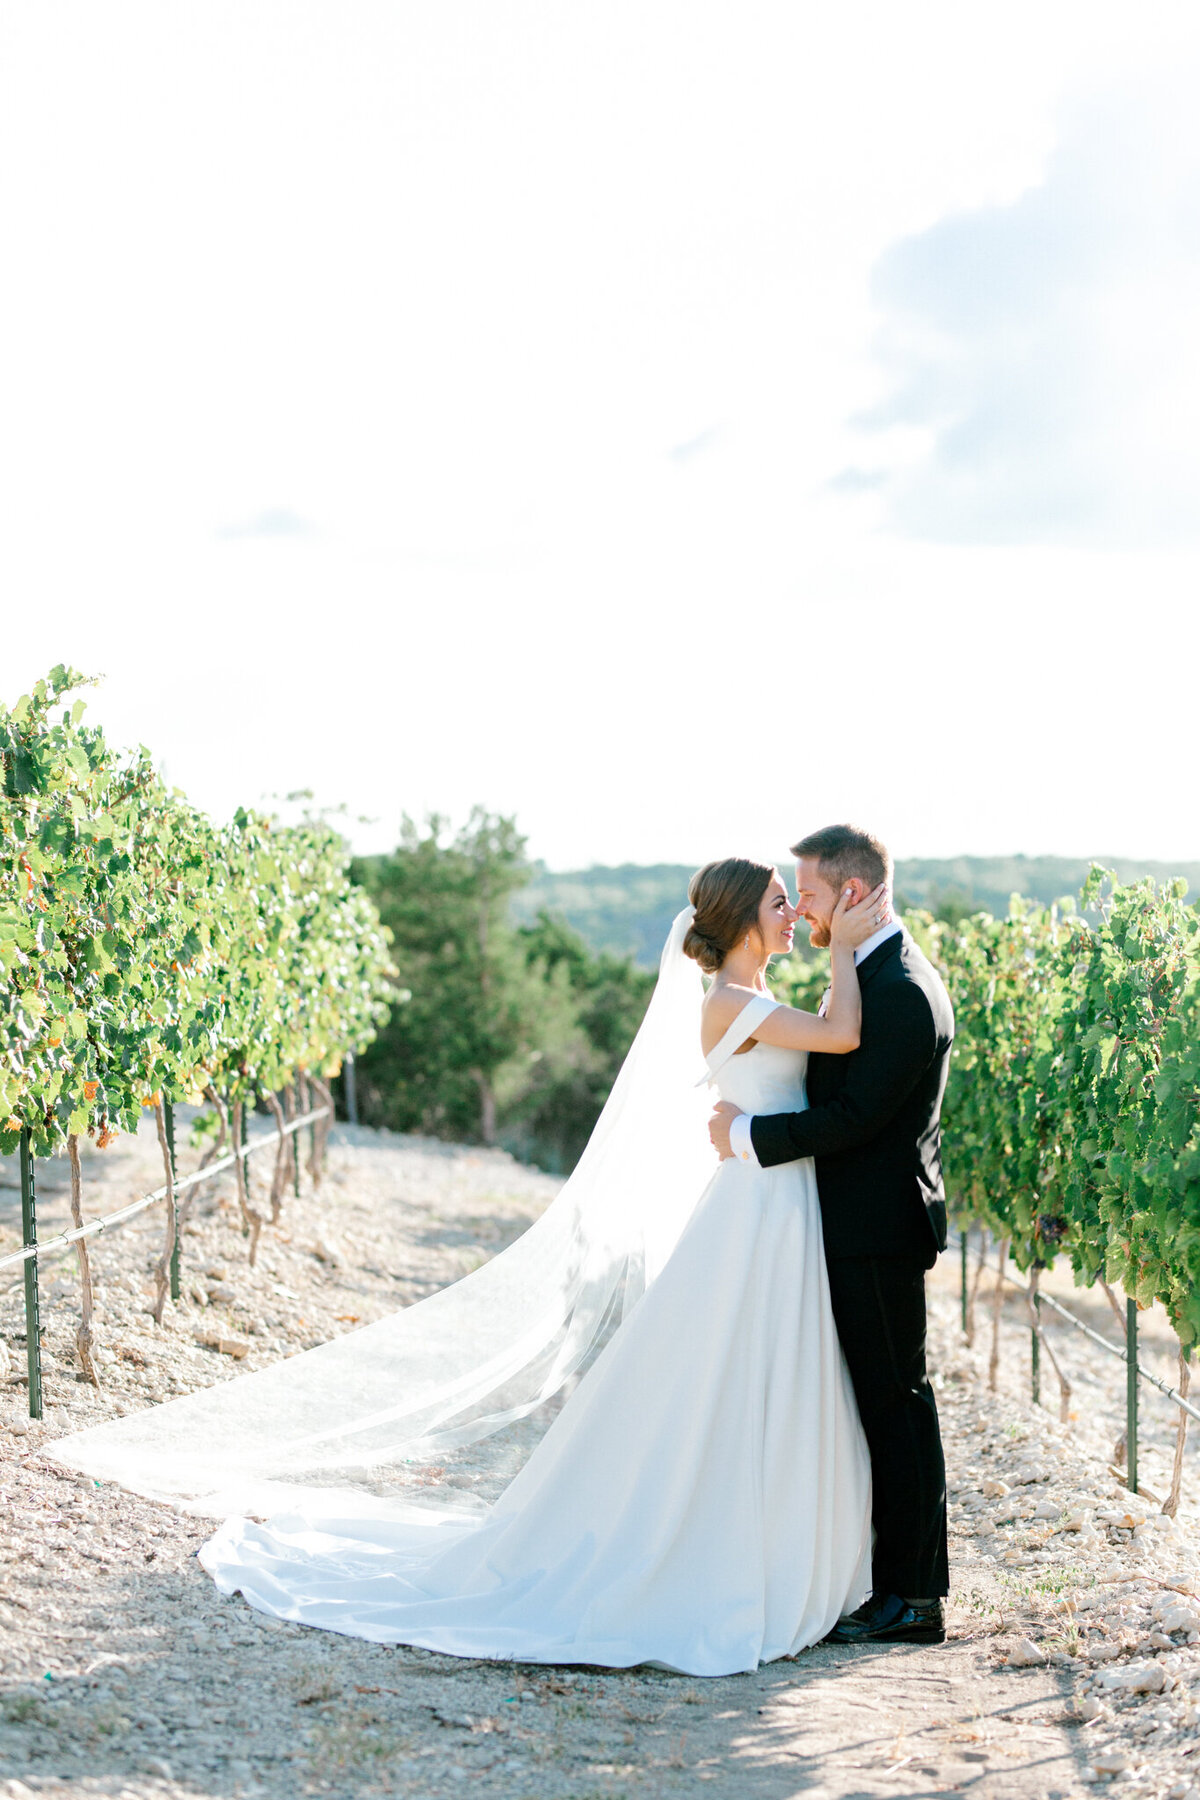 Lexi Broughton & Garrett Greer Wedding at Dove Ridge Vineyards | Sami Kathryn Photography | Dallas Wedding Photography-131